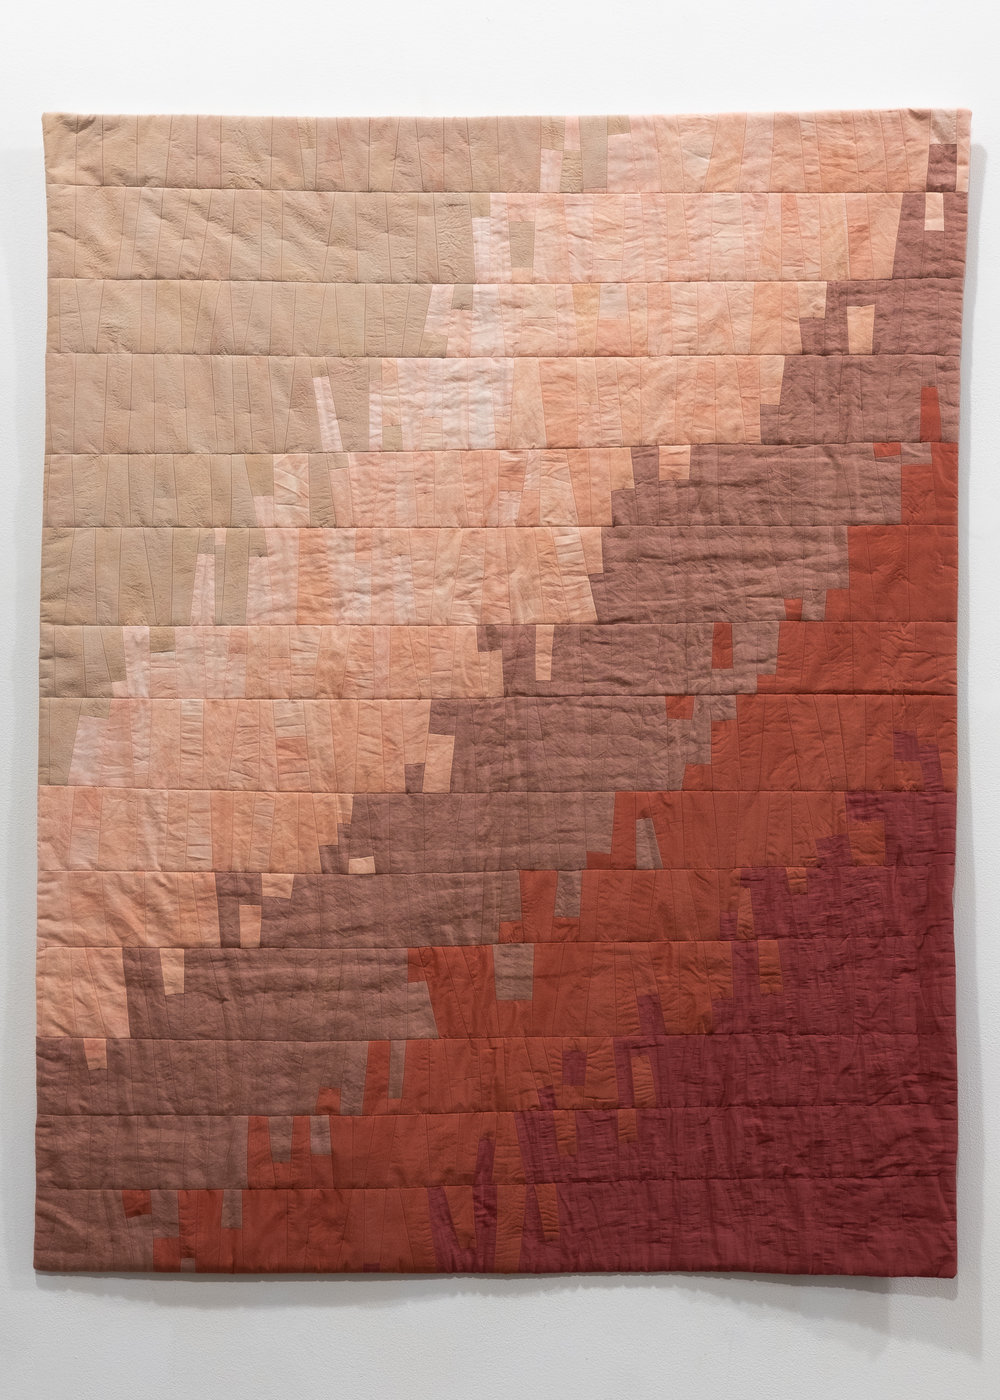 Maggie Dimmick   Mojave  rescued silks, linens, cottons, polyester thread, recycled polyester batting 37.5 x 47 inches MDI 002G